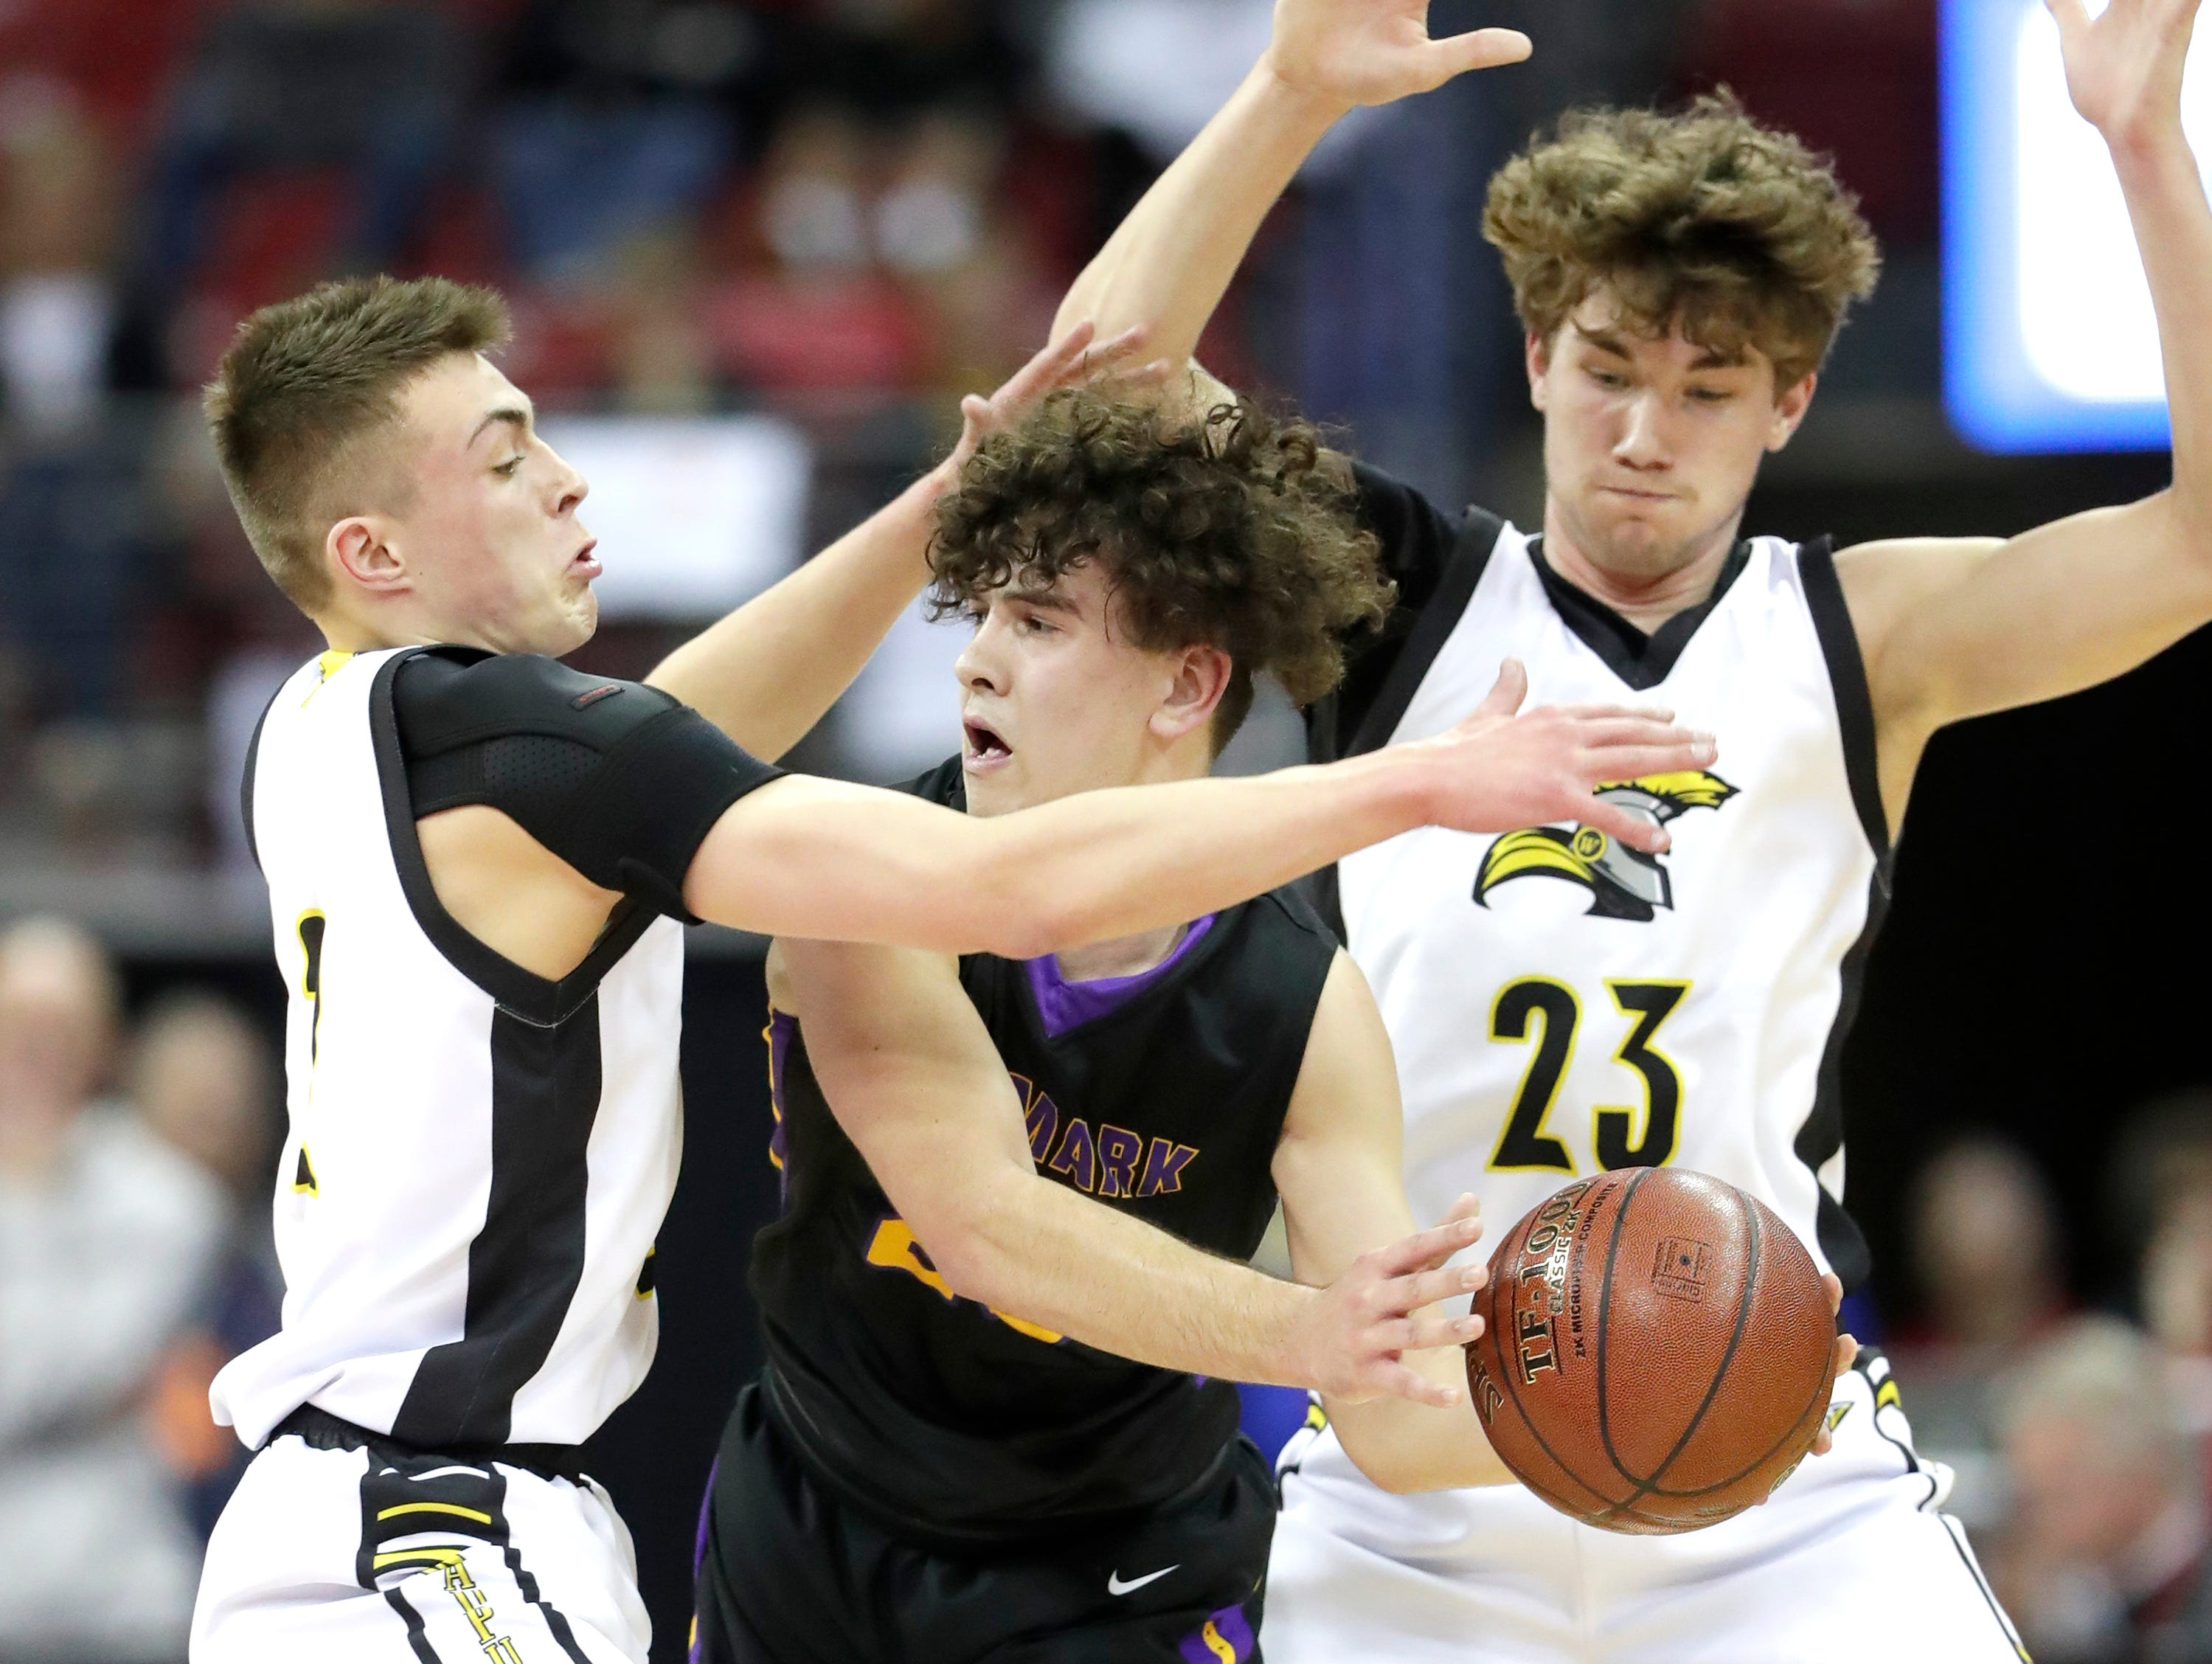 Denmark High Schoo's #23 Brady Jensl against Waupun High School's #2 Trevor VandeZande, left, and  #23 Reece Homan, right, during their WIAA Division 3 boys basketball state semifinal on Thursday, March 14, 2019, at the KohlCenter in Madison, Wis.